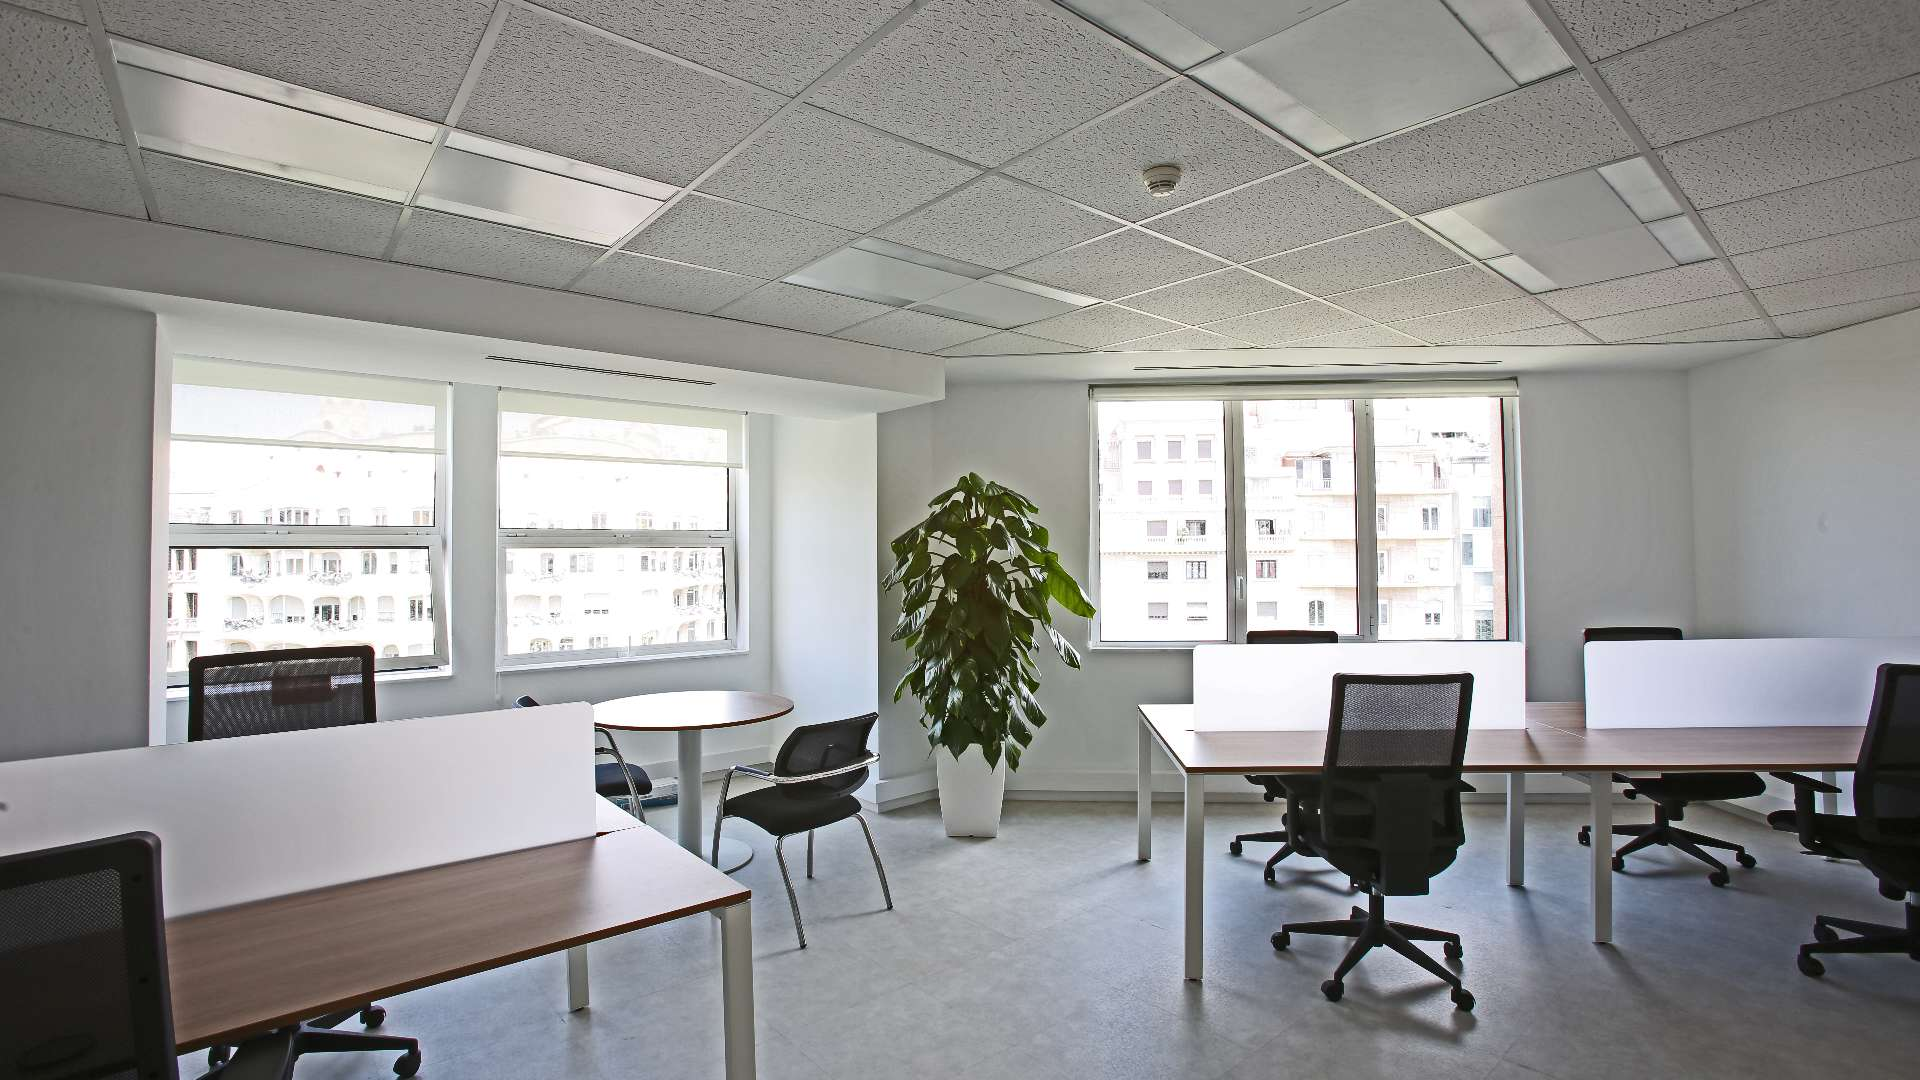 Picture of Paseo de Gracia - Coworking, a desk in the undefined undefined